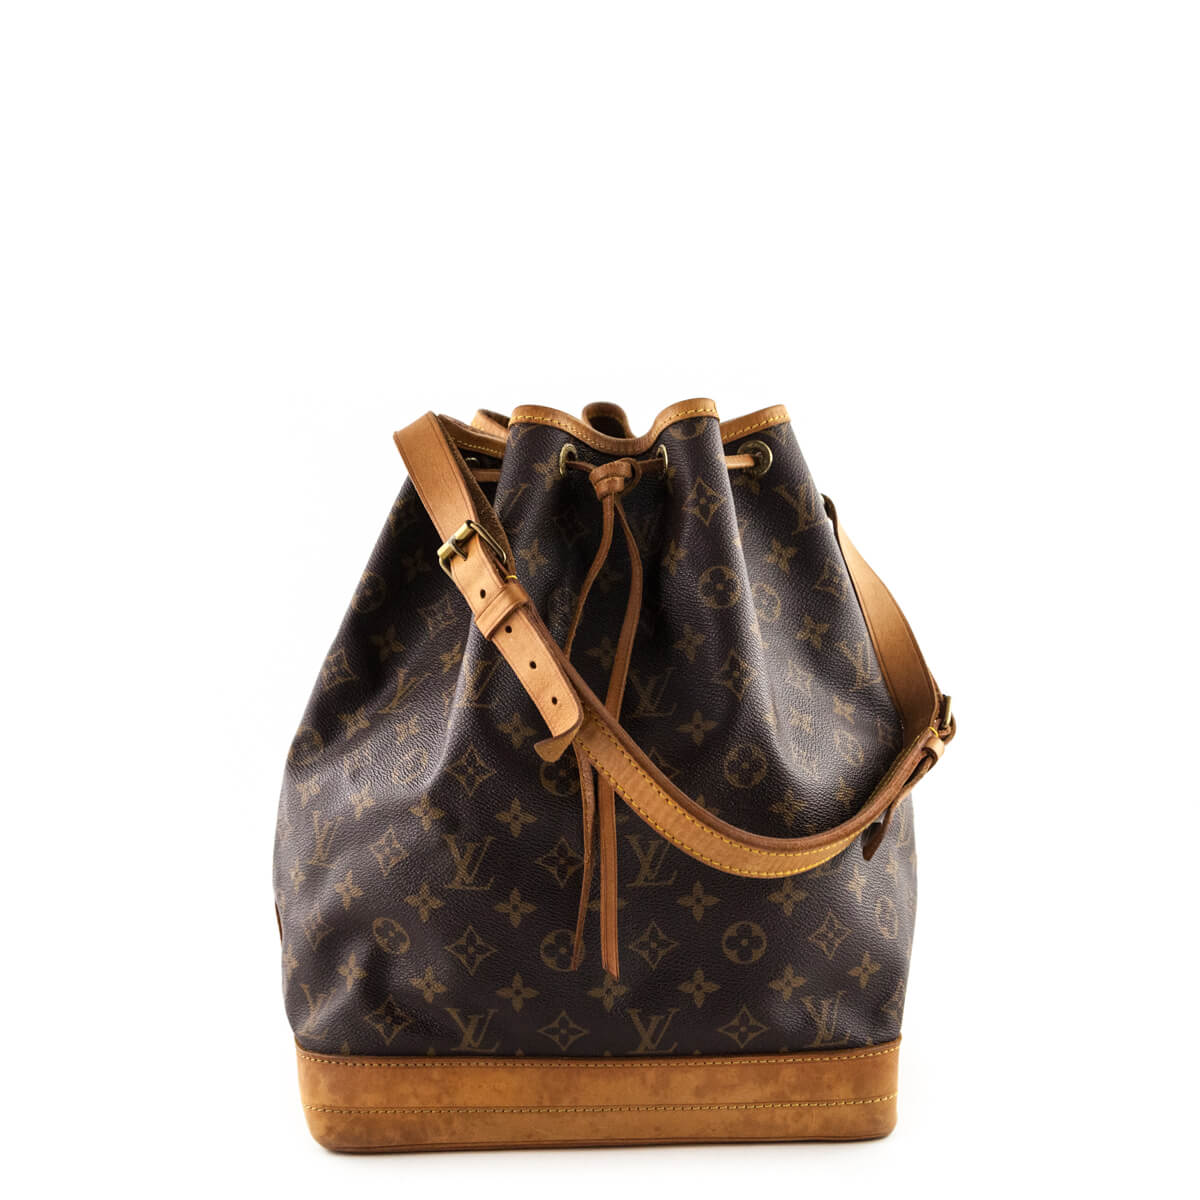 1f8df747bca5 Louis Vuitton Monogram Vintage Noe Bucket - LOVE that BAG - Preowned  Authentic Designer Handbags ...